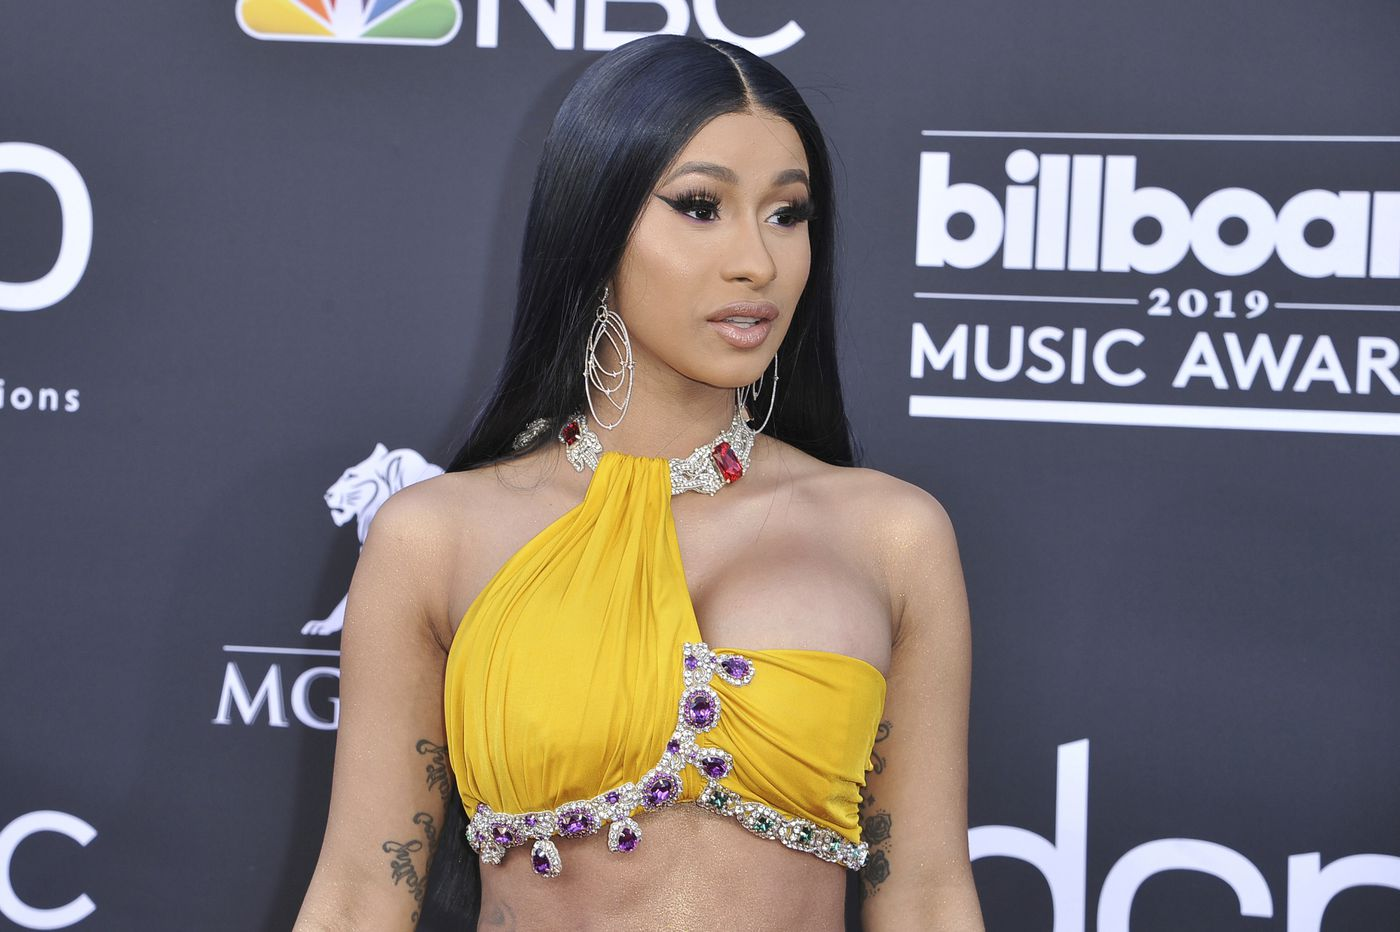 Cardi B Flaunts 6 Pack Abs In Instagram Video Watch Clip: Dear Cardi B, Thank You For Showing Off Your Untoned Tummy